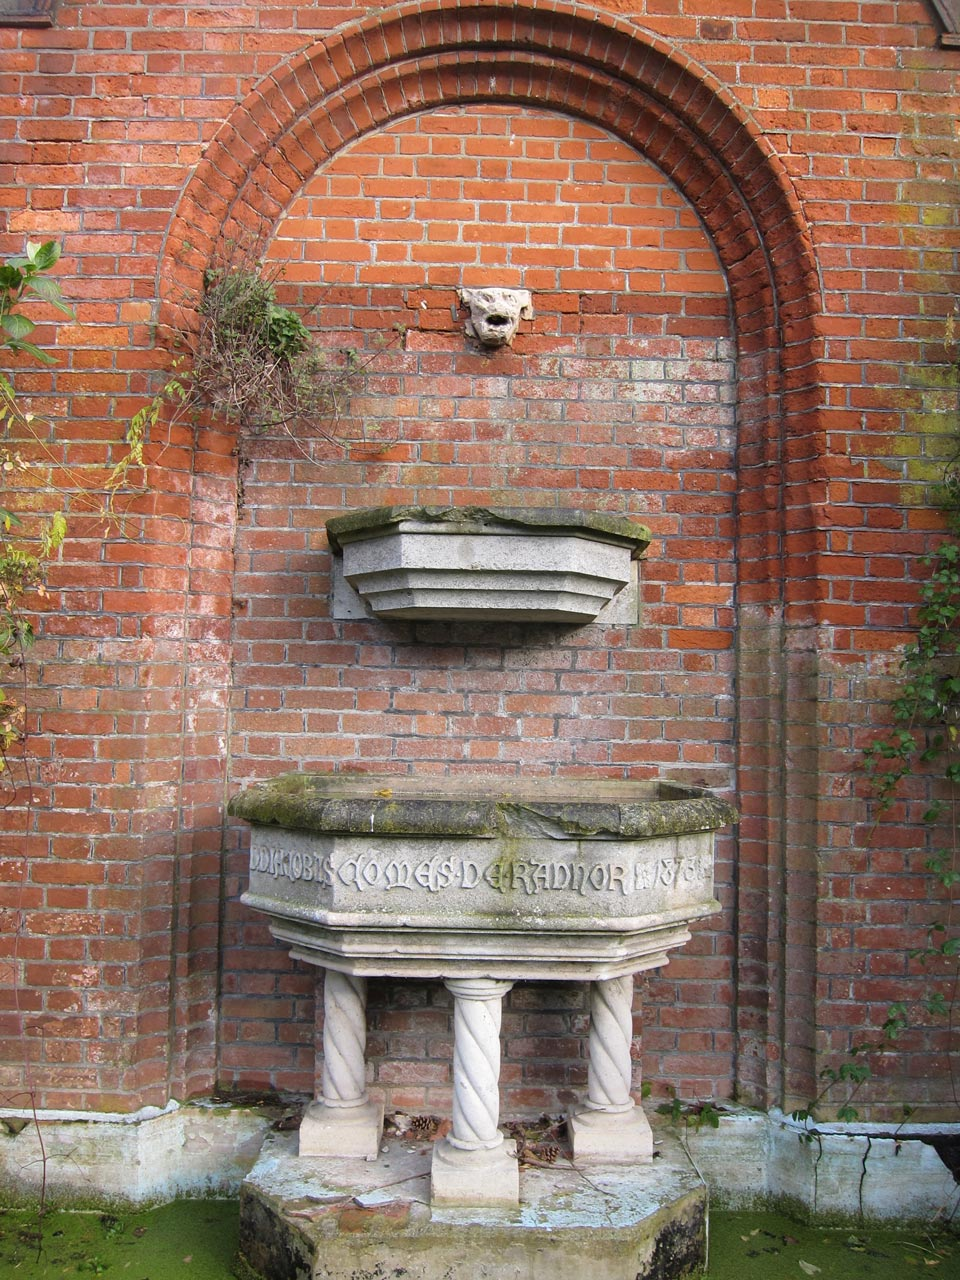 On the terrace of the former Mayfield and Jackwood House